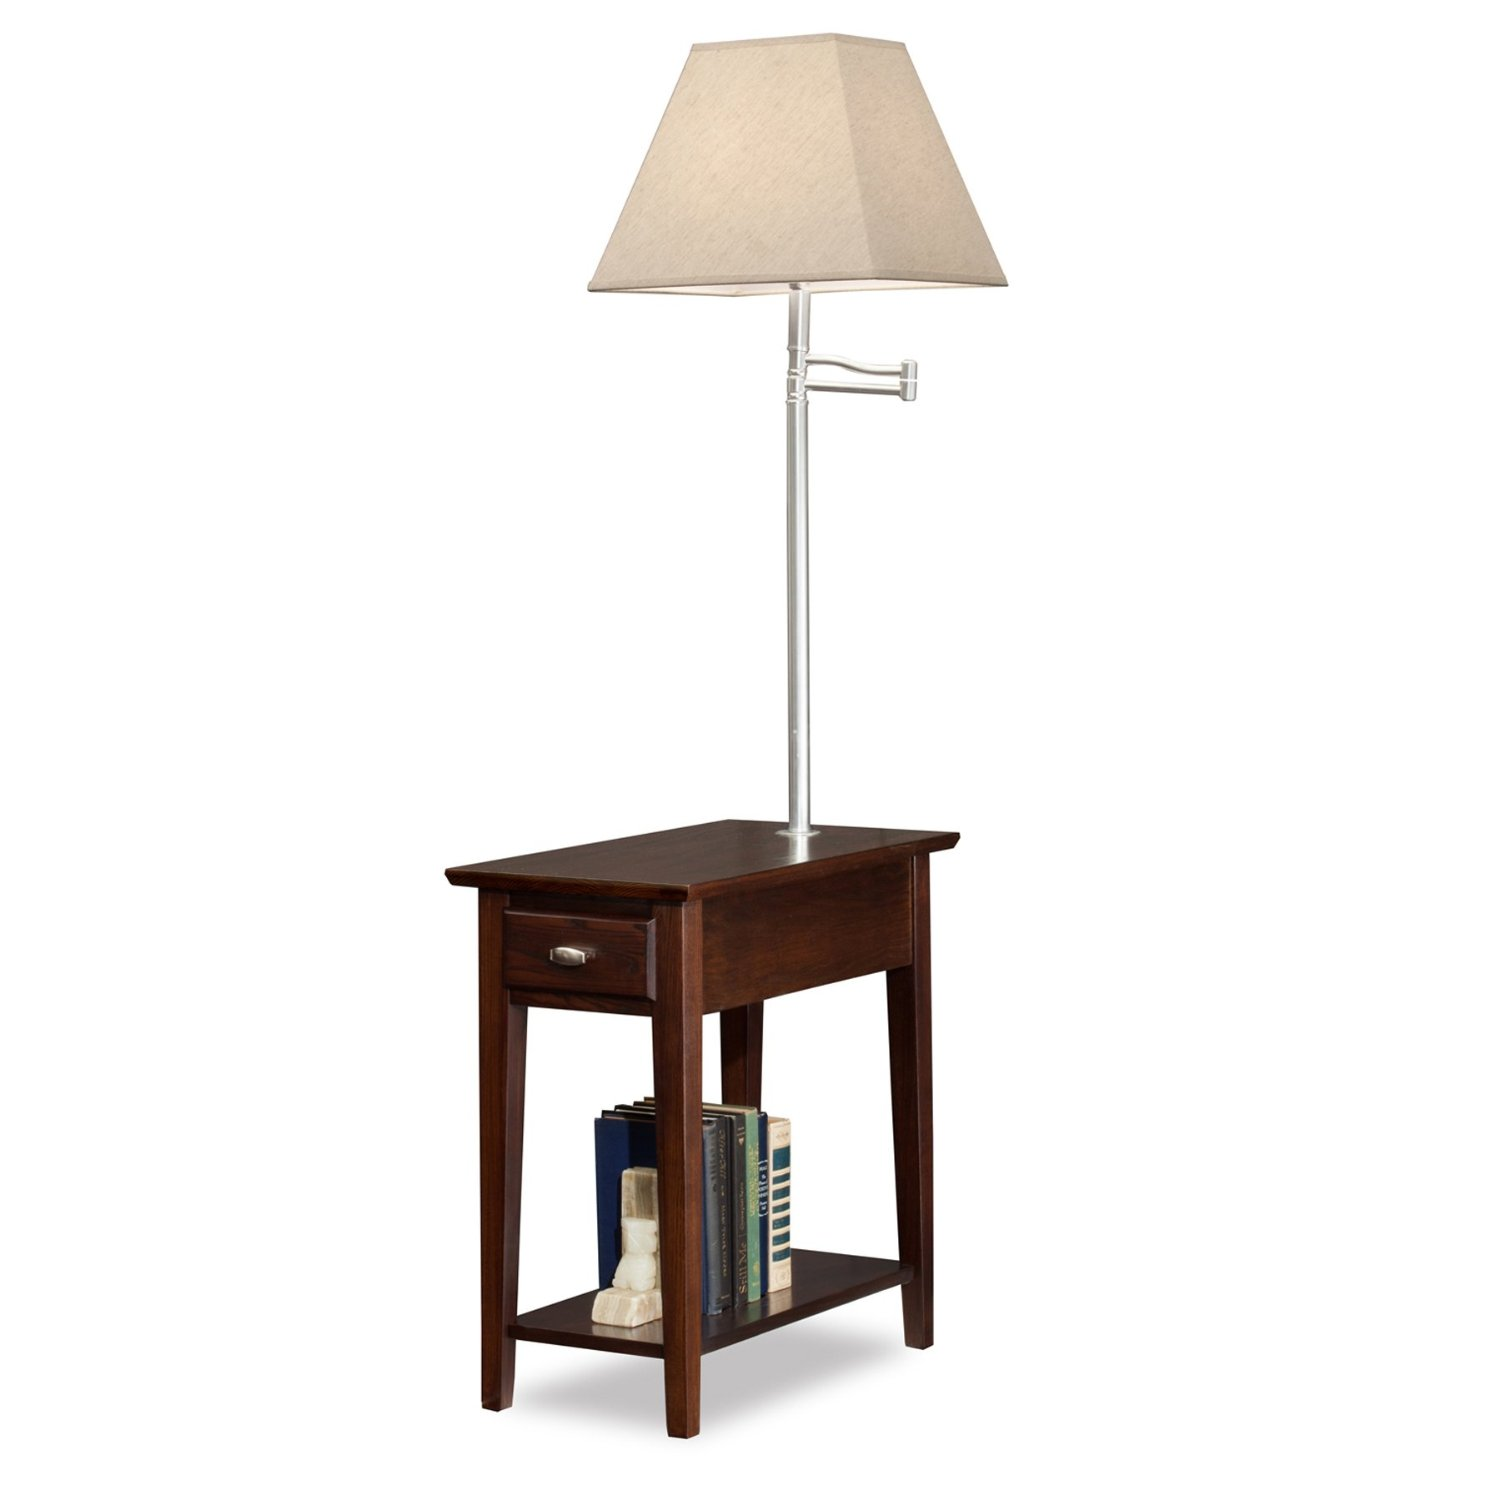 Standing Lamp With Table: floor lamp with table photo - 5,Lighting